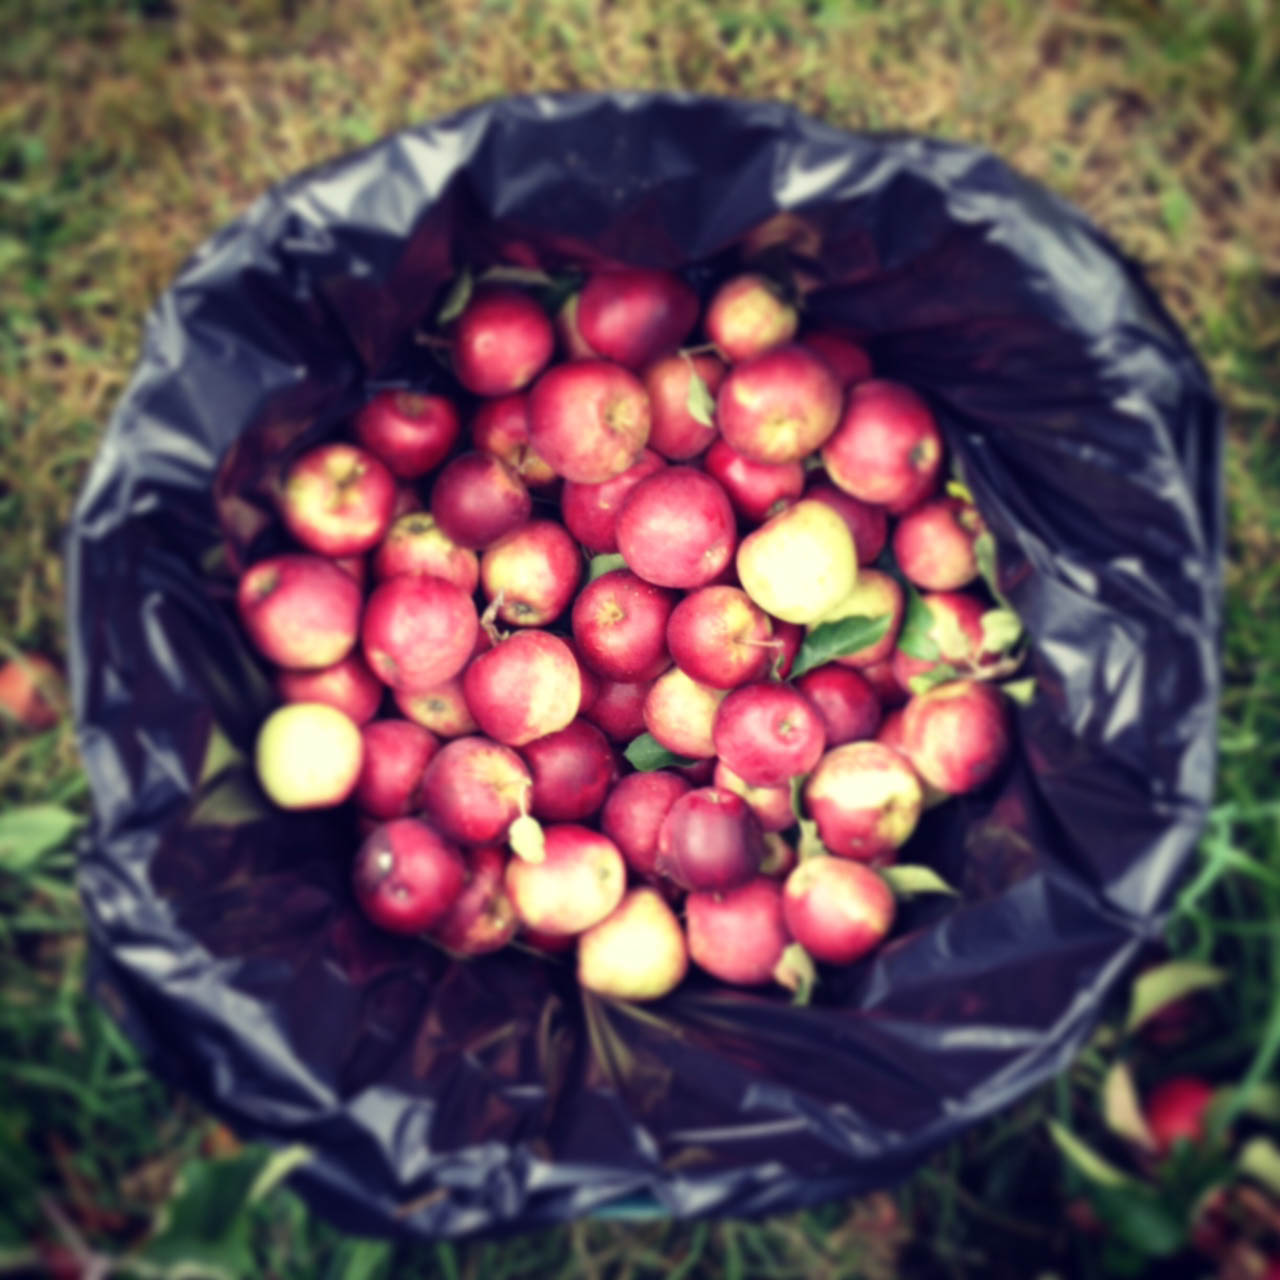 Collecting apples after 10 minutes